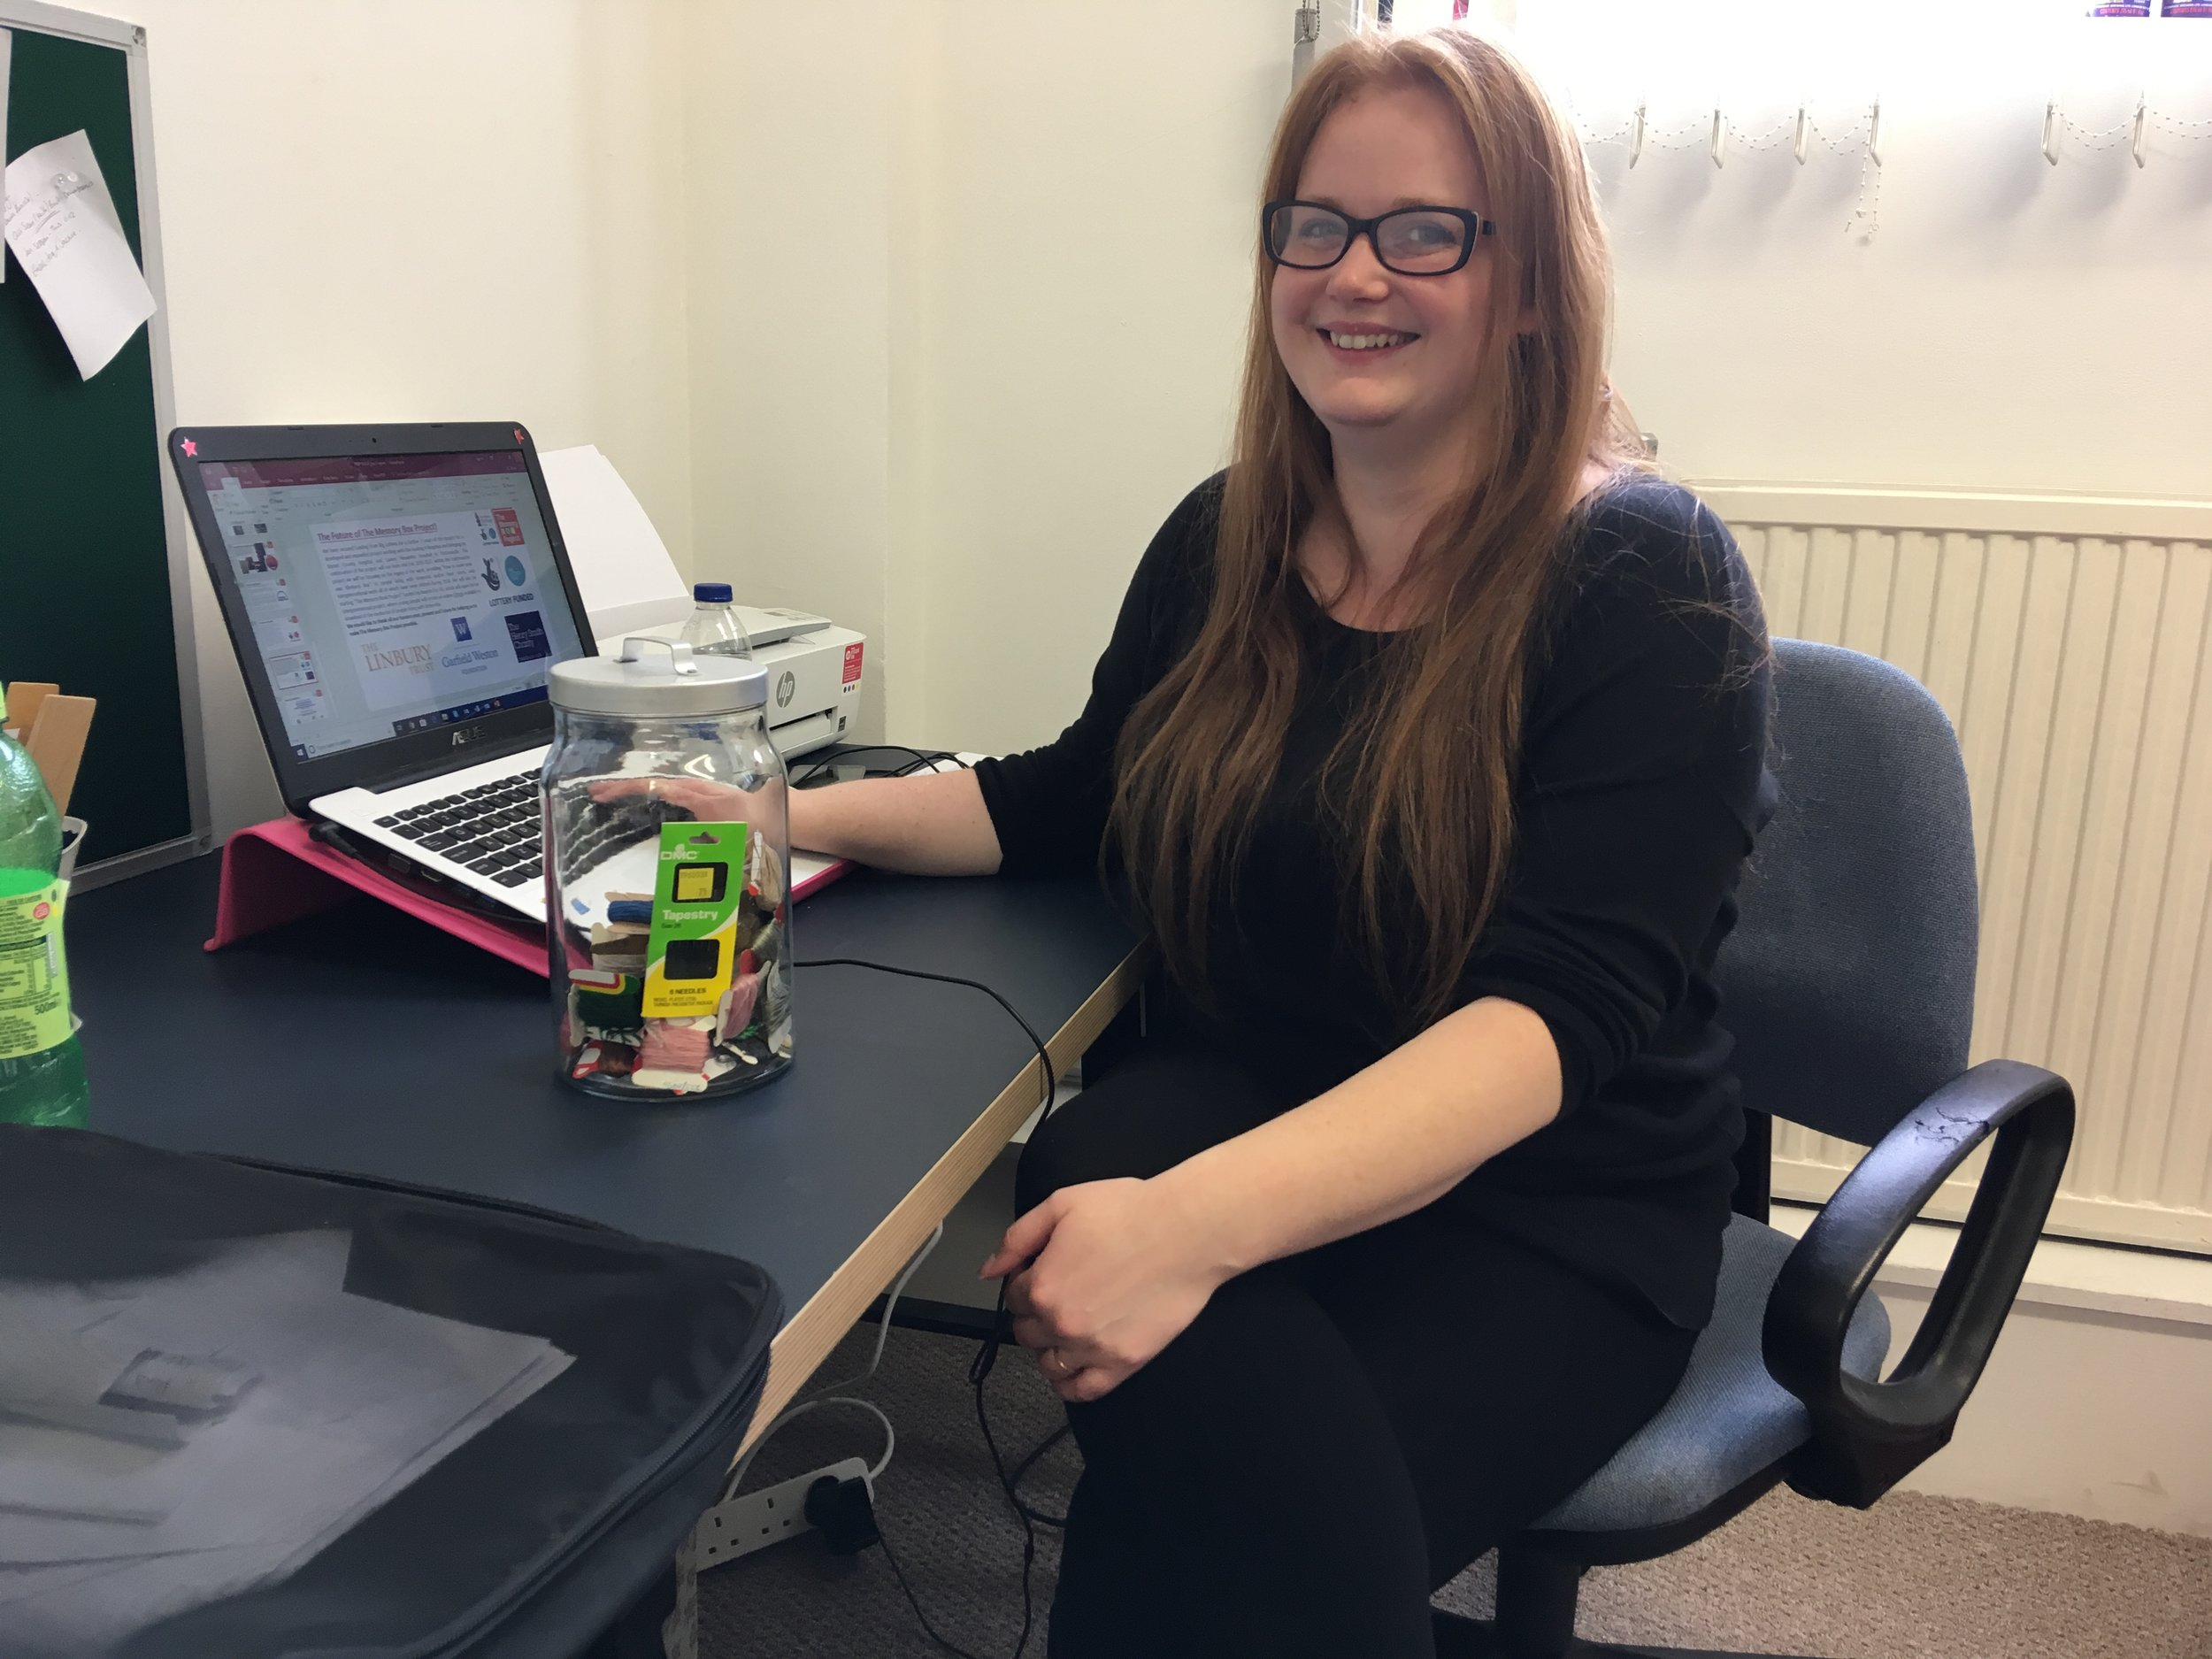 Heather Parkinson  is based in our Southampton Office and is Education and Research Officer for the Trust